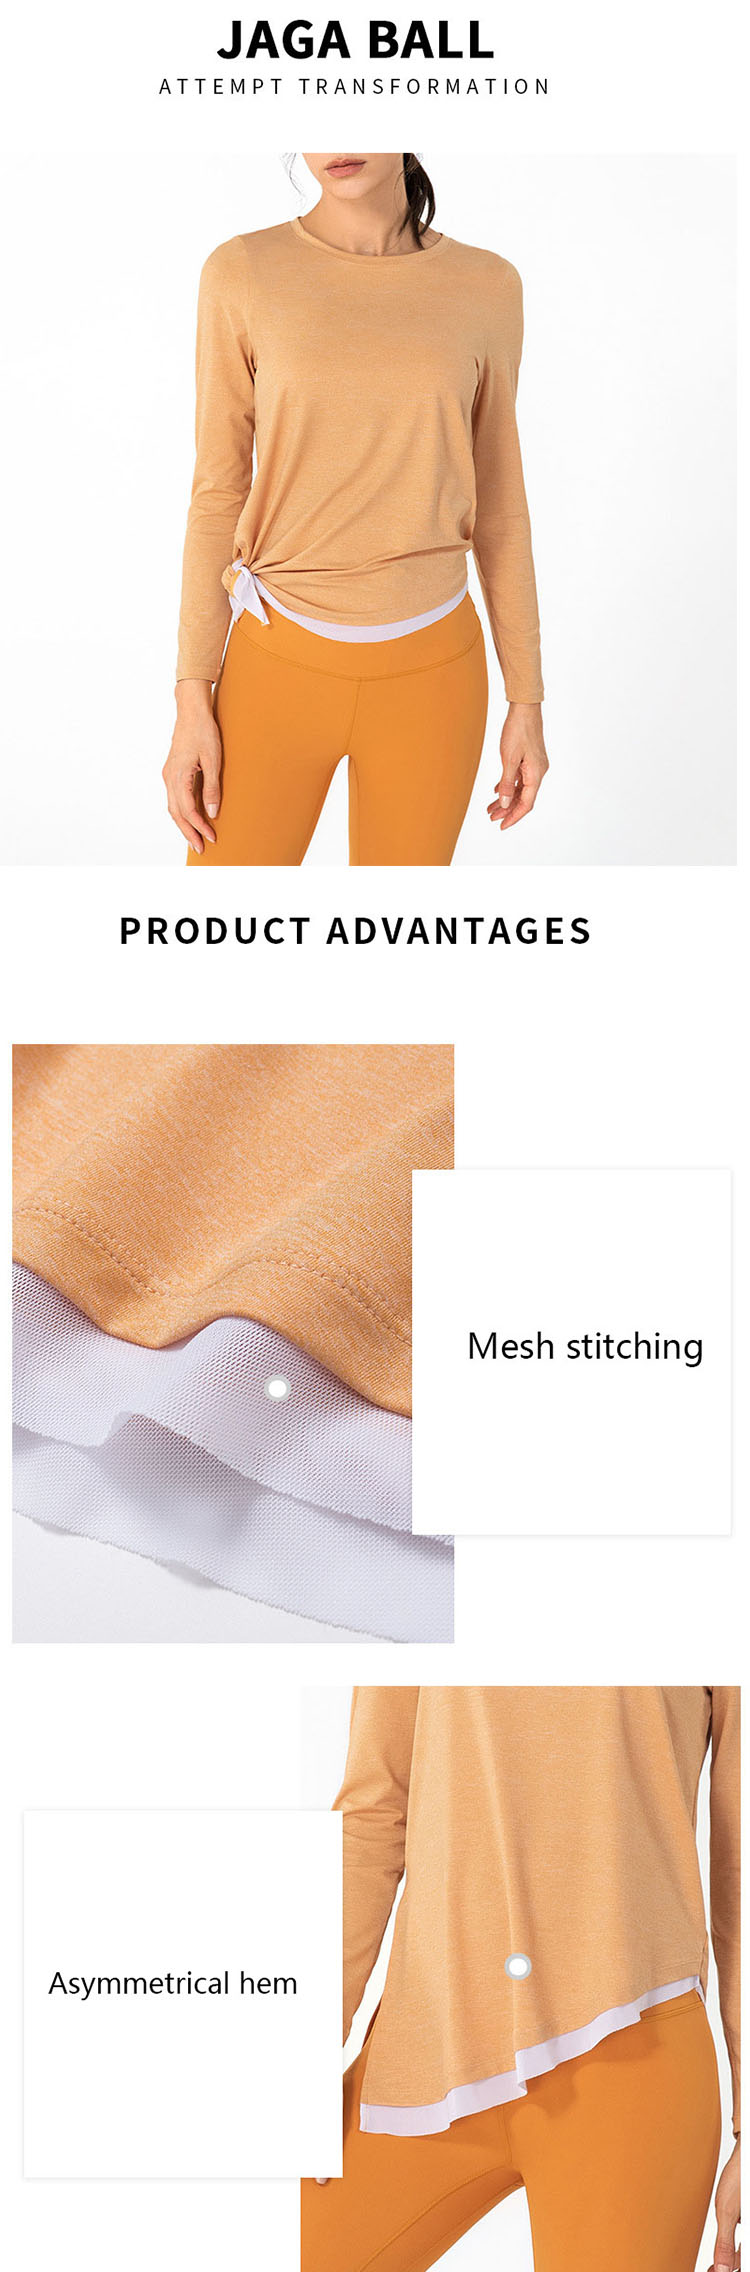 Long sleeve athletic tops, unique tearing details and contrast stitching are all very trendy design elements